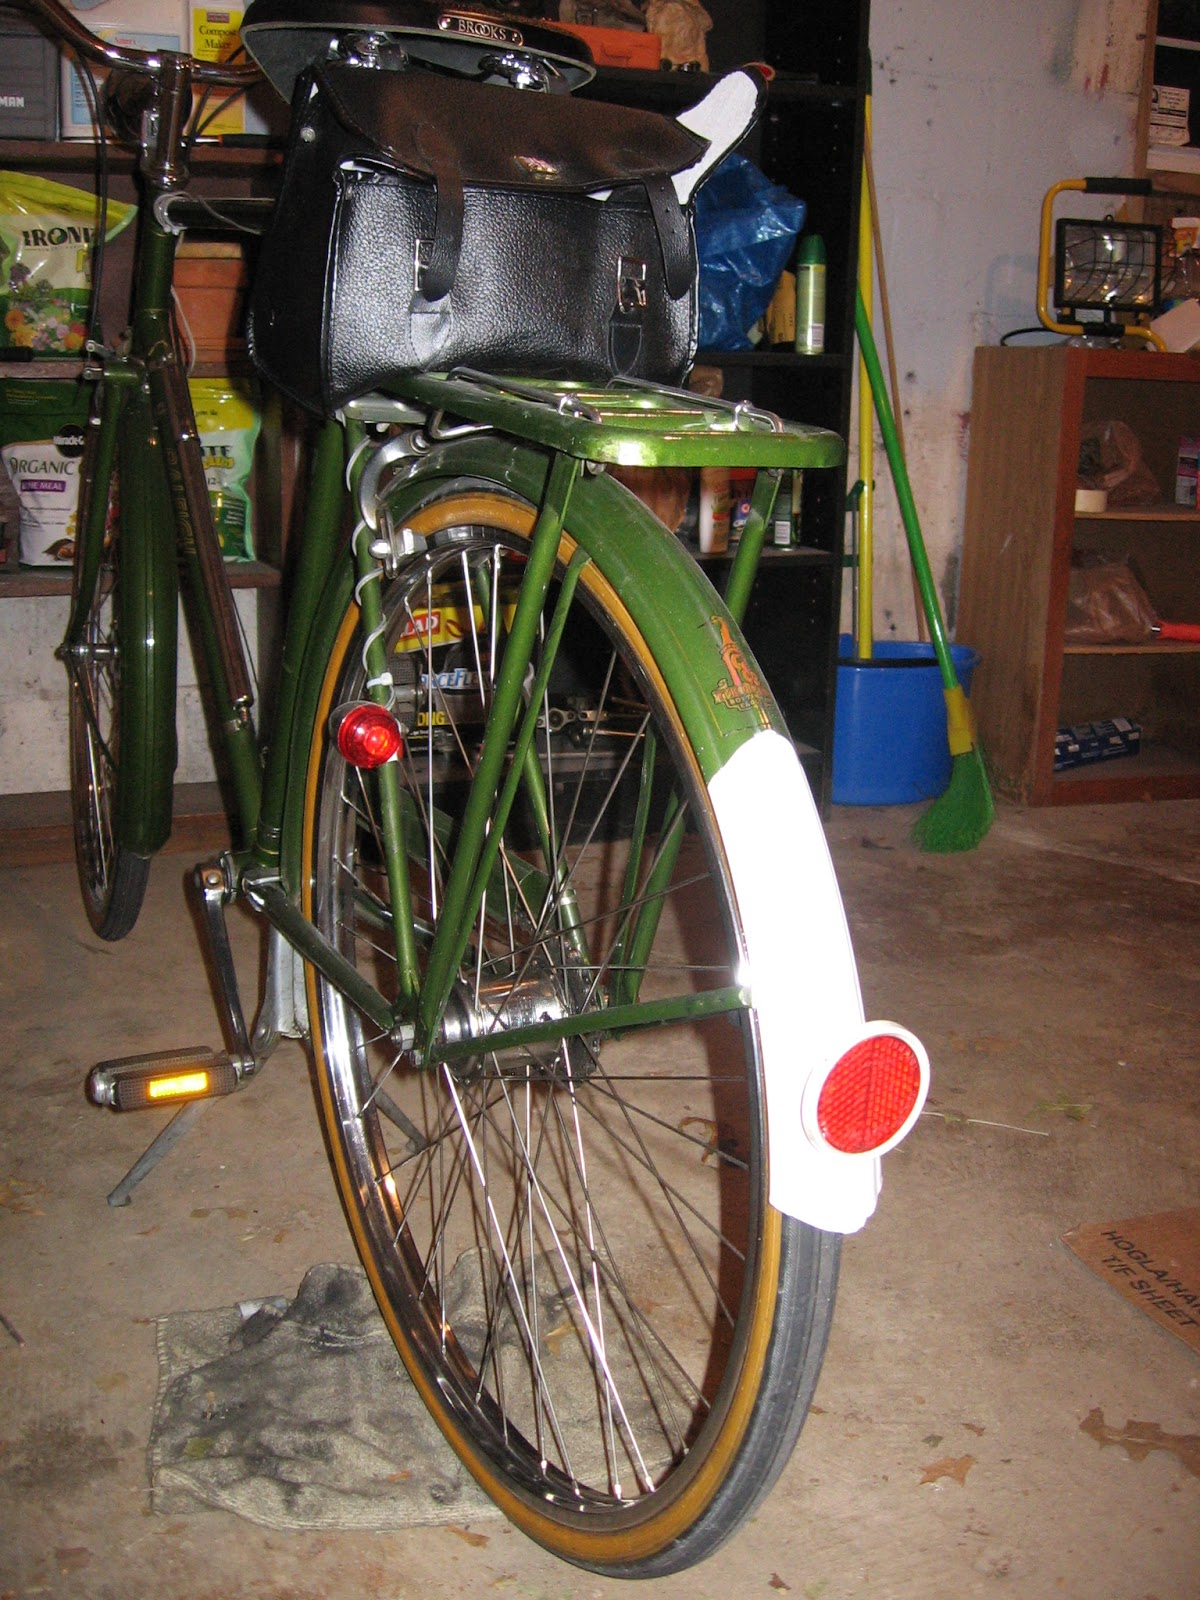 The Bike Shed: Riding Vintage Bicycles In the Winter